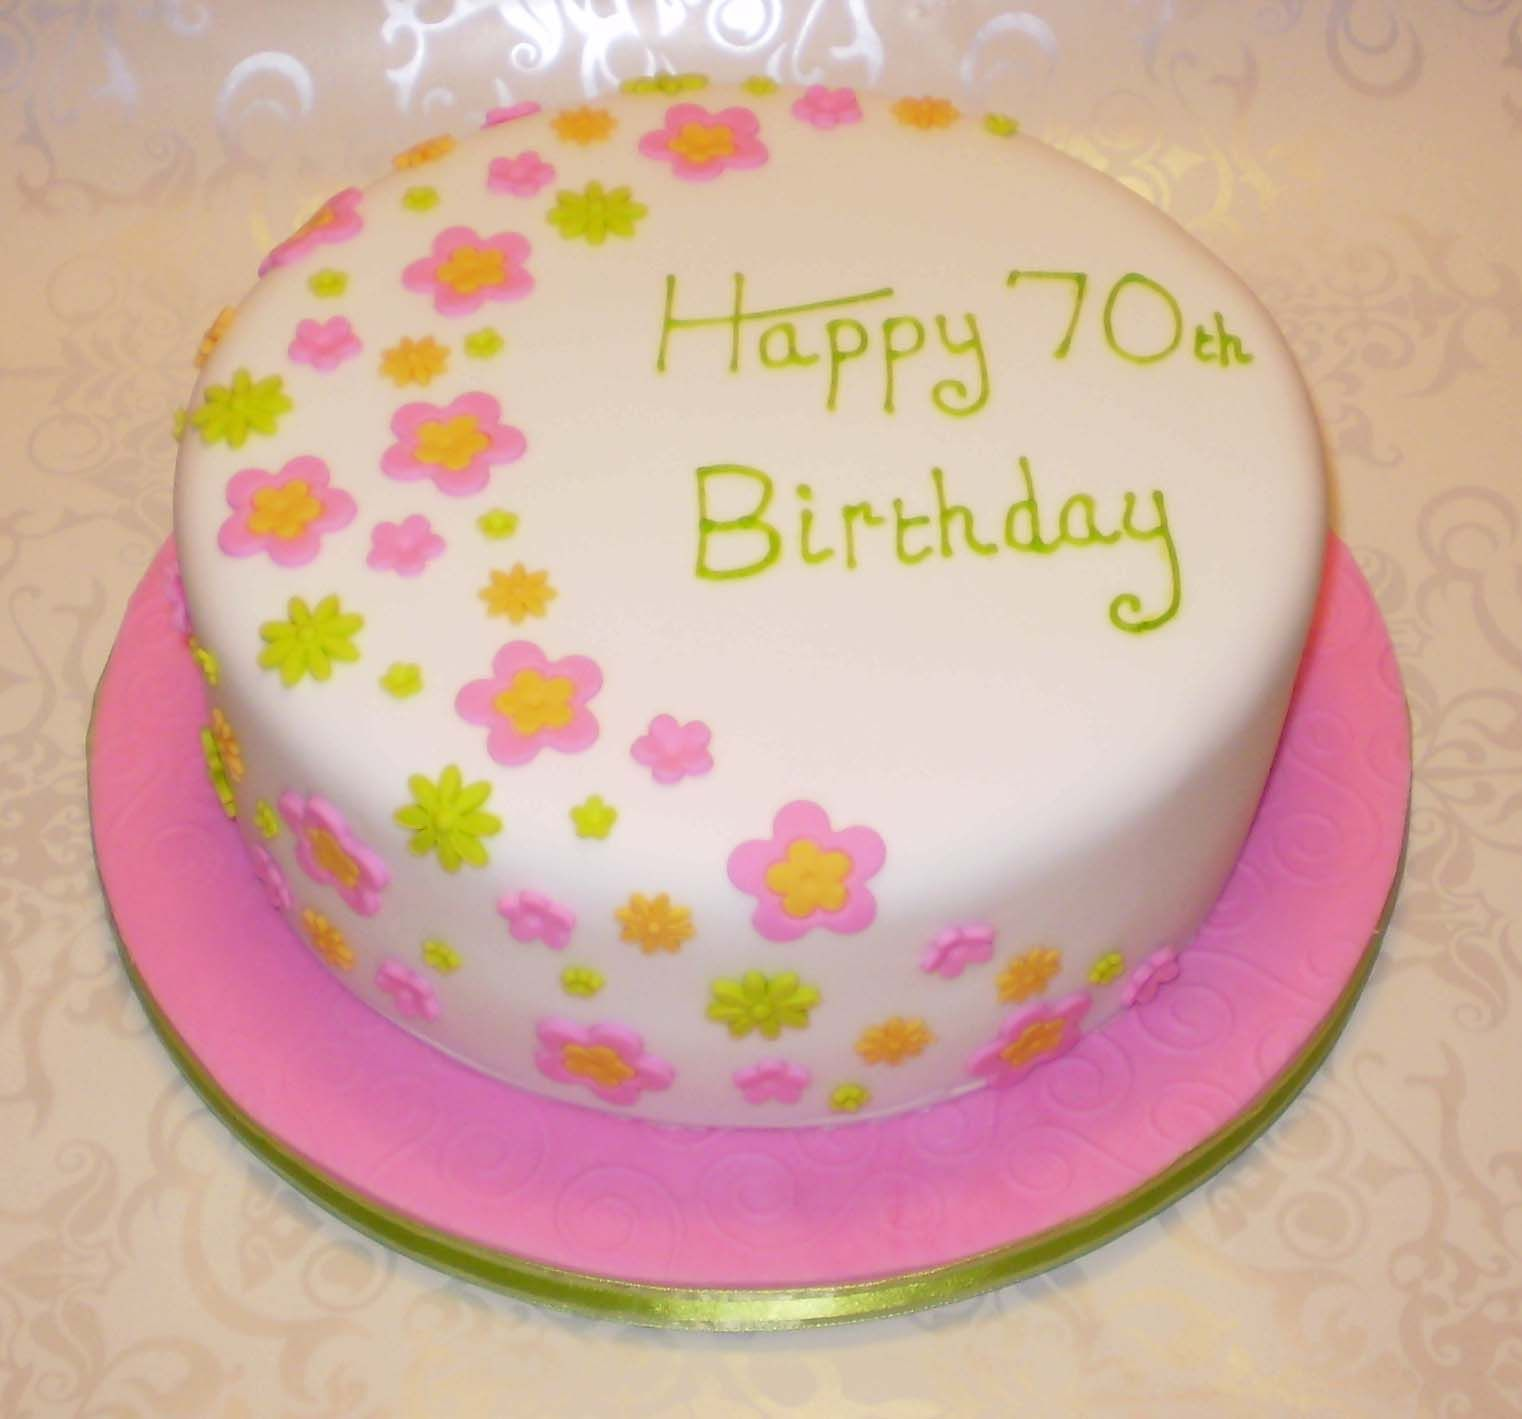 Birthday Cake Flower 390  Cakes  Pinterest  Birthday cakes ...